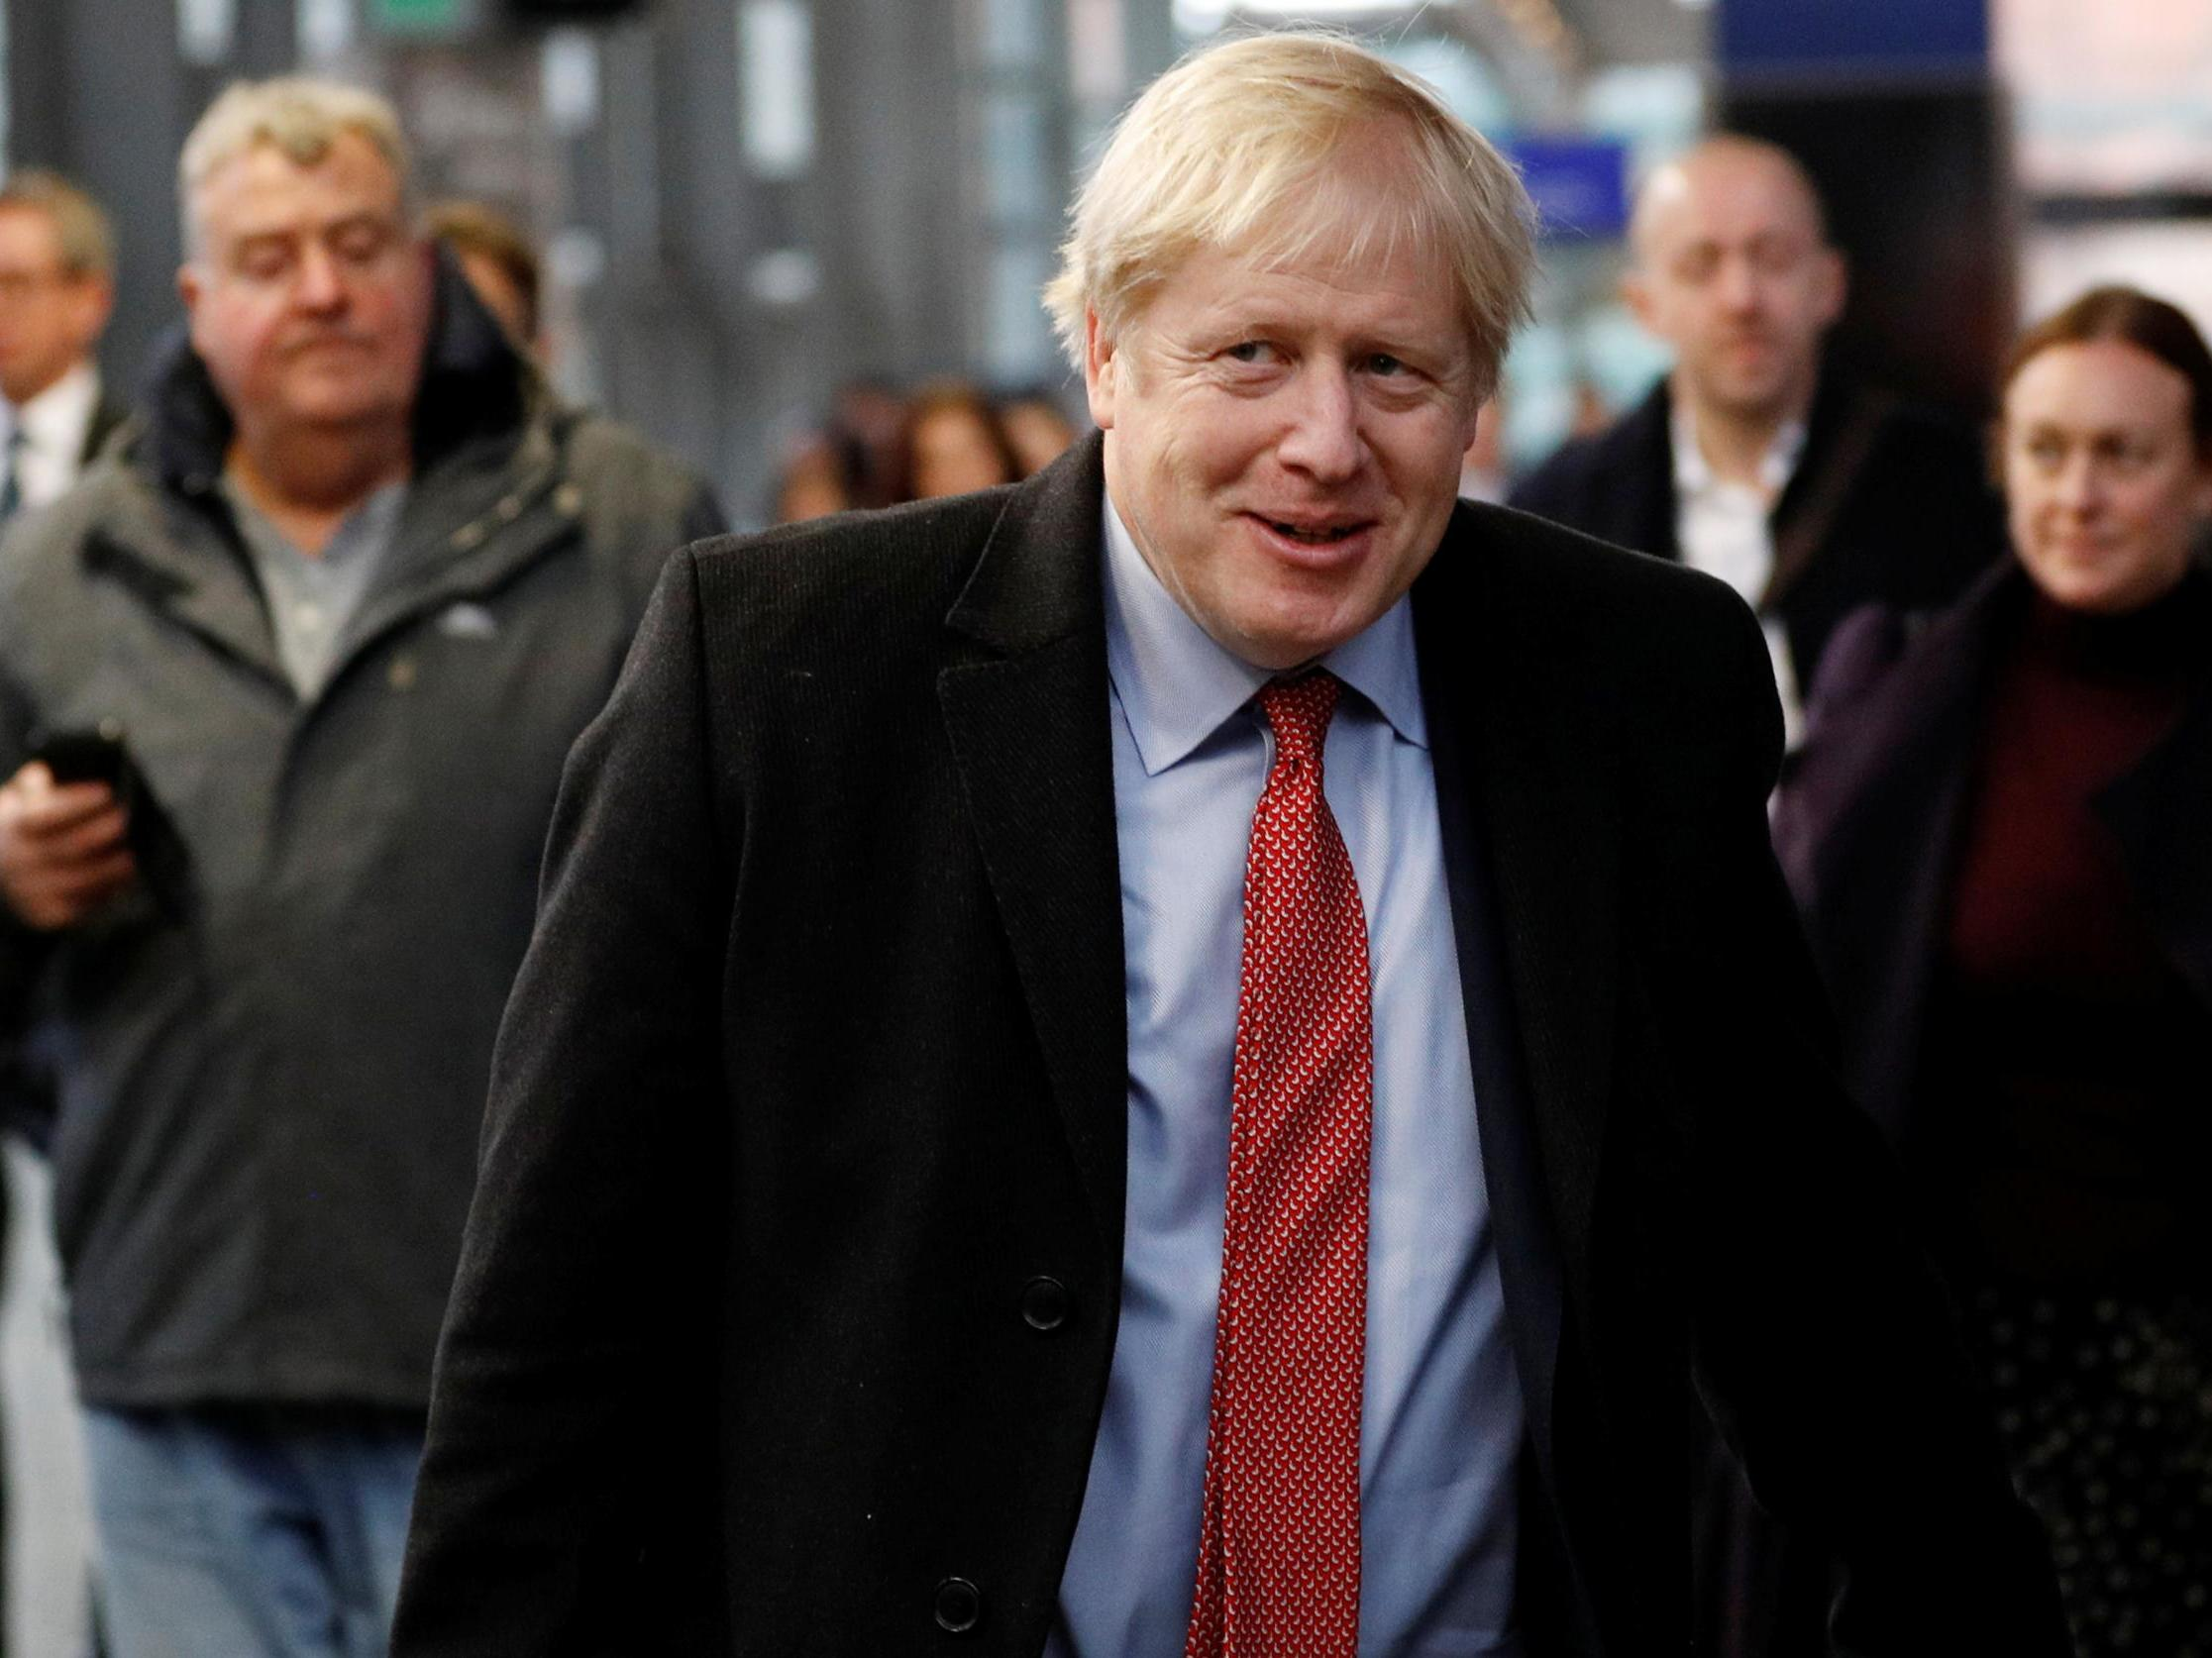 General election: Boris Johnson admits there will be Brexit customs checks